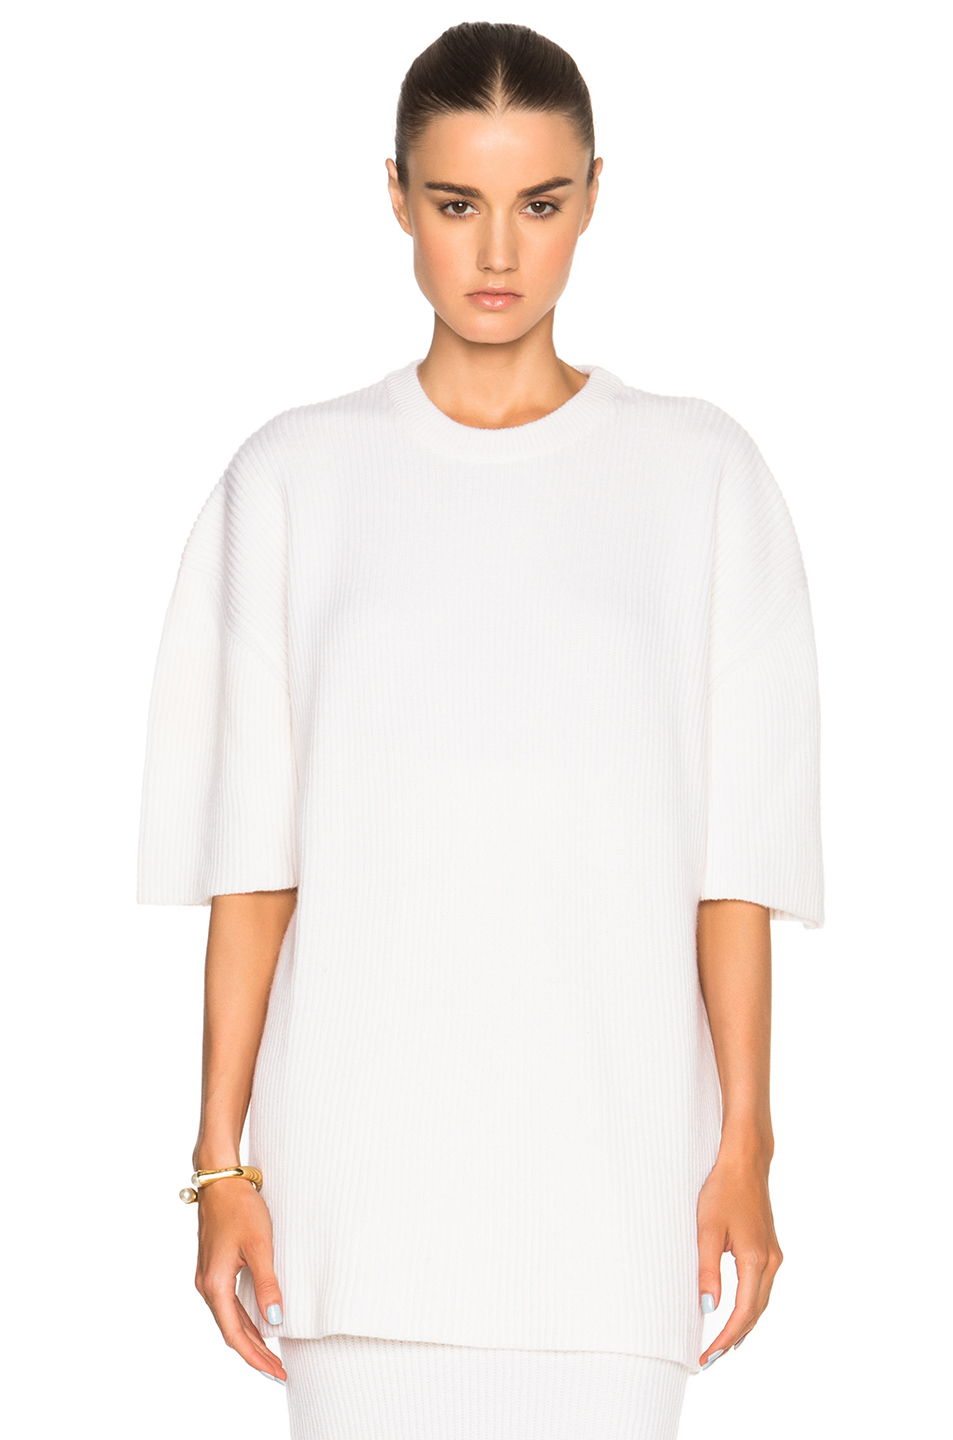 Ryan roche Short Sleeve Cashmere Sweater in White | Lyst